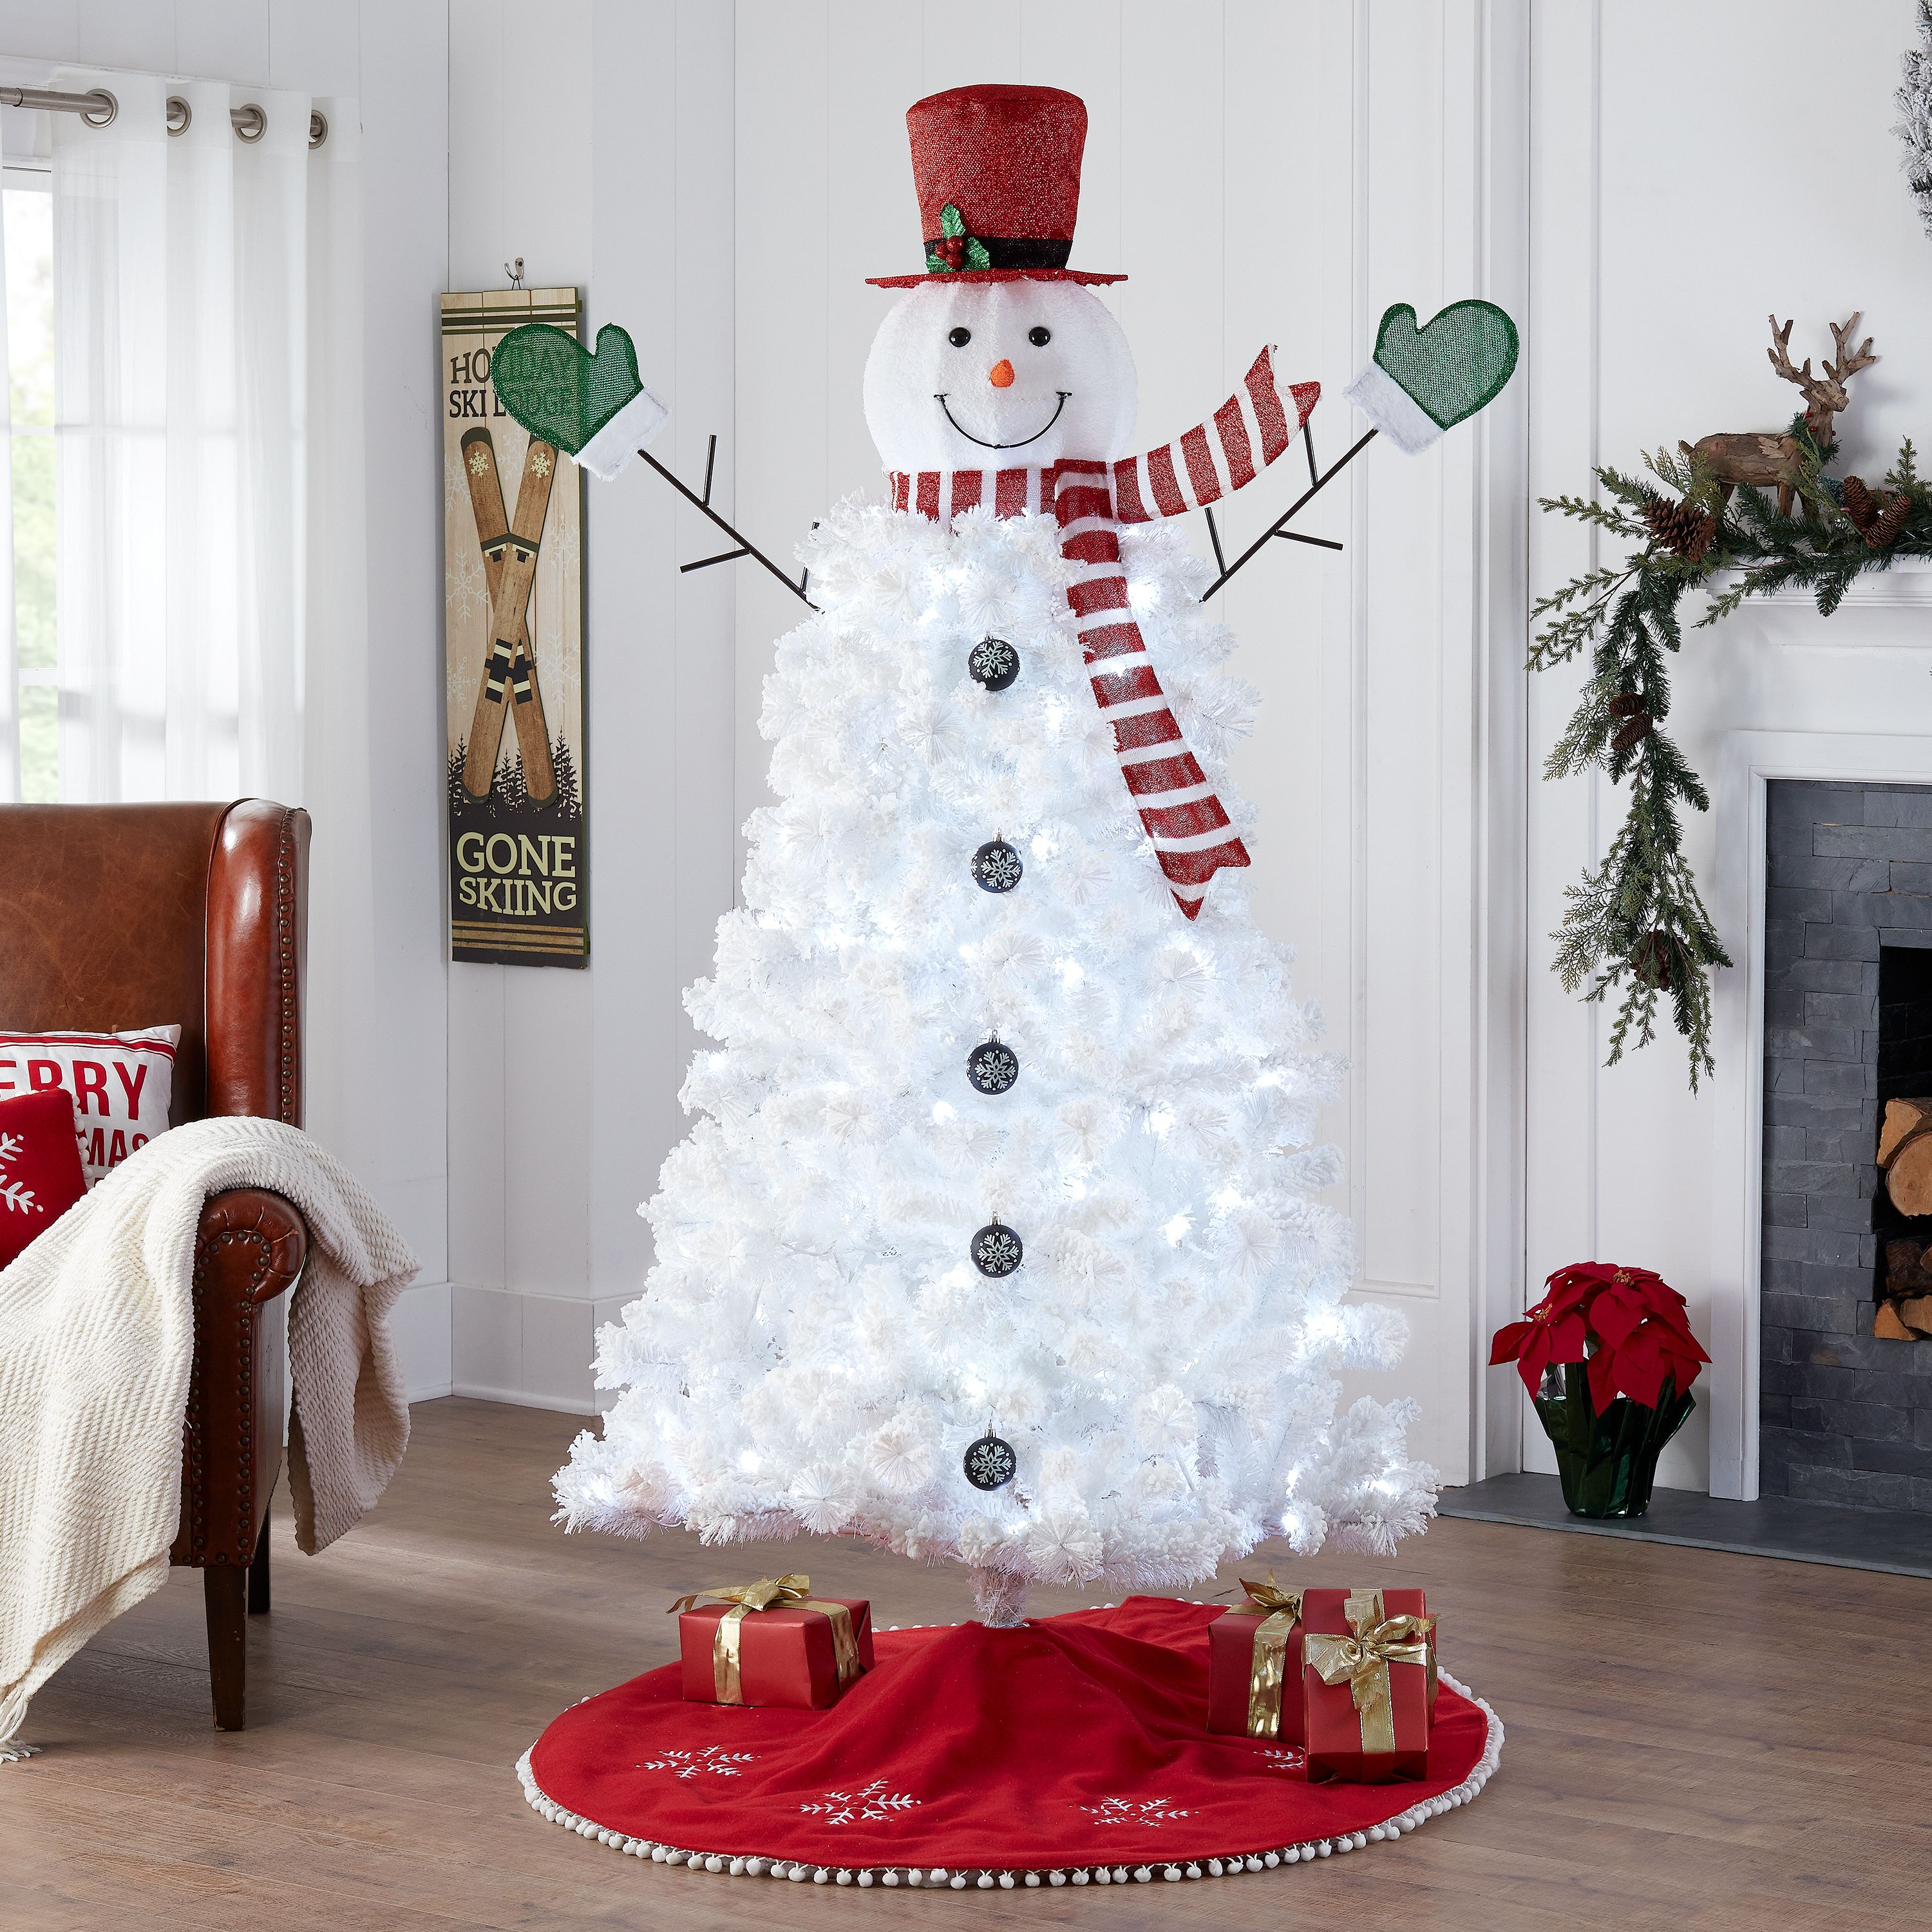 Foldable//Pop Up Decorations Snowman for Xmas Indoor Outdoor Decor Vanthylit Pre-lit Collapible Christmas Snowman Lights 6FT 120LT Warm White with Twinkle Lights